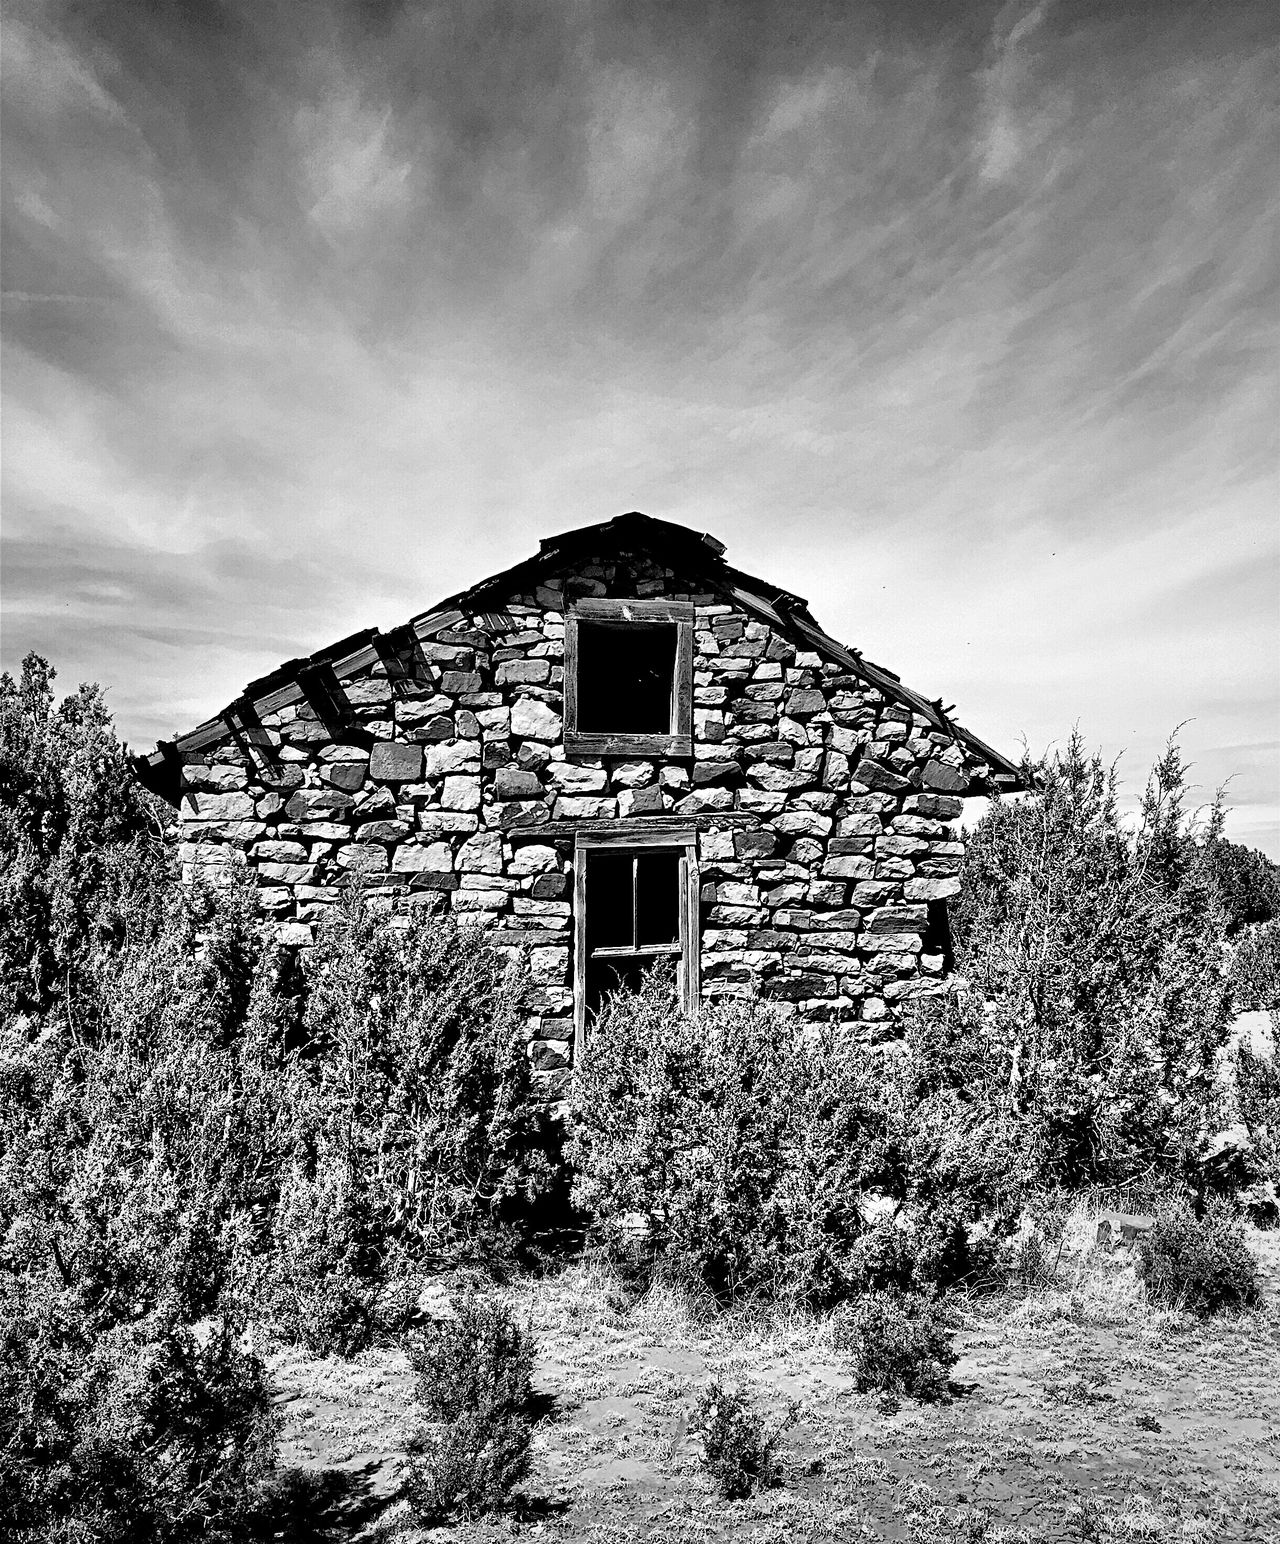 """One With Nature"" An abandoned ranch house, hand built with surrounding natural stones, sits re-assimilating in with the natural environment off State Highway 3 in rural New Mexico, USA. Stone Stonehouse Natural Beauty Newmexicophotography Old House Blackandwhite Photography Abandoned Buildings NewMexicoTRUE"